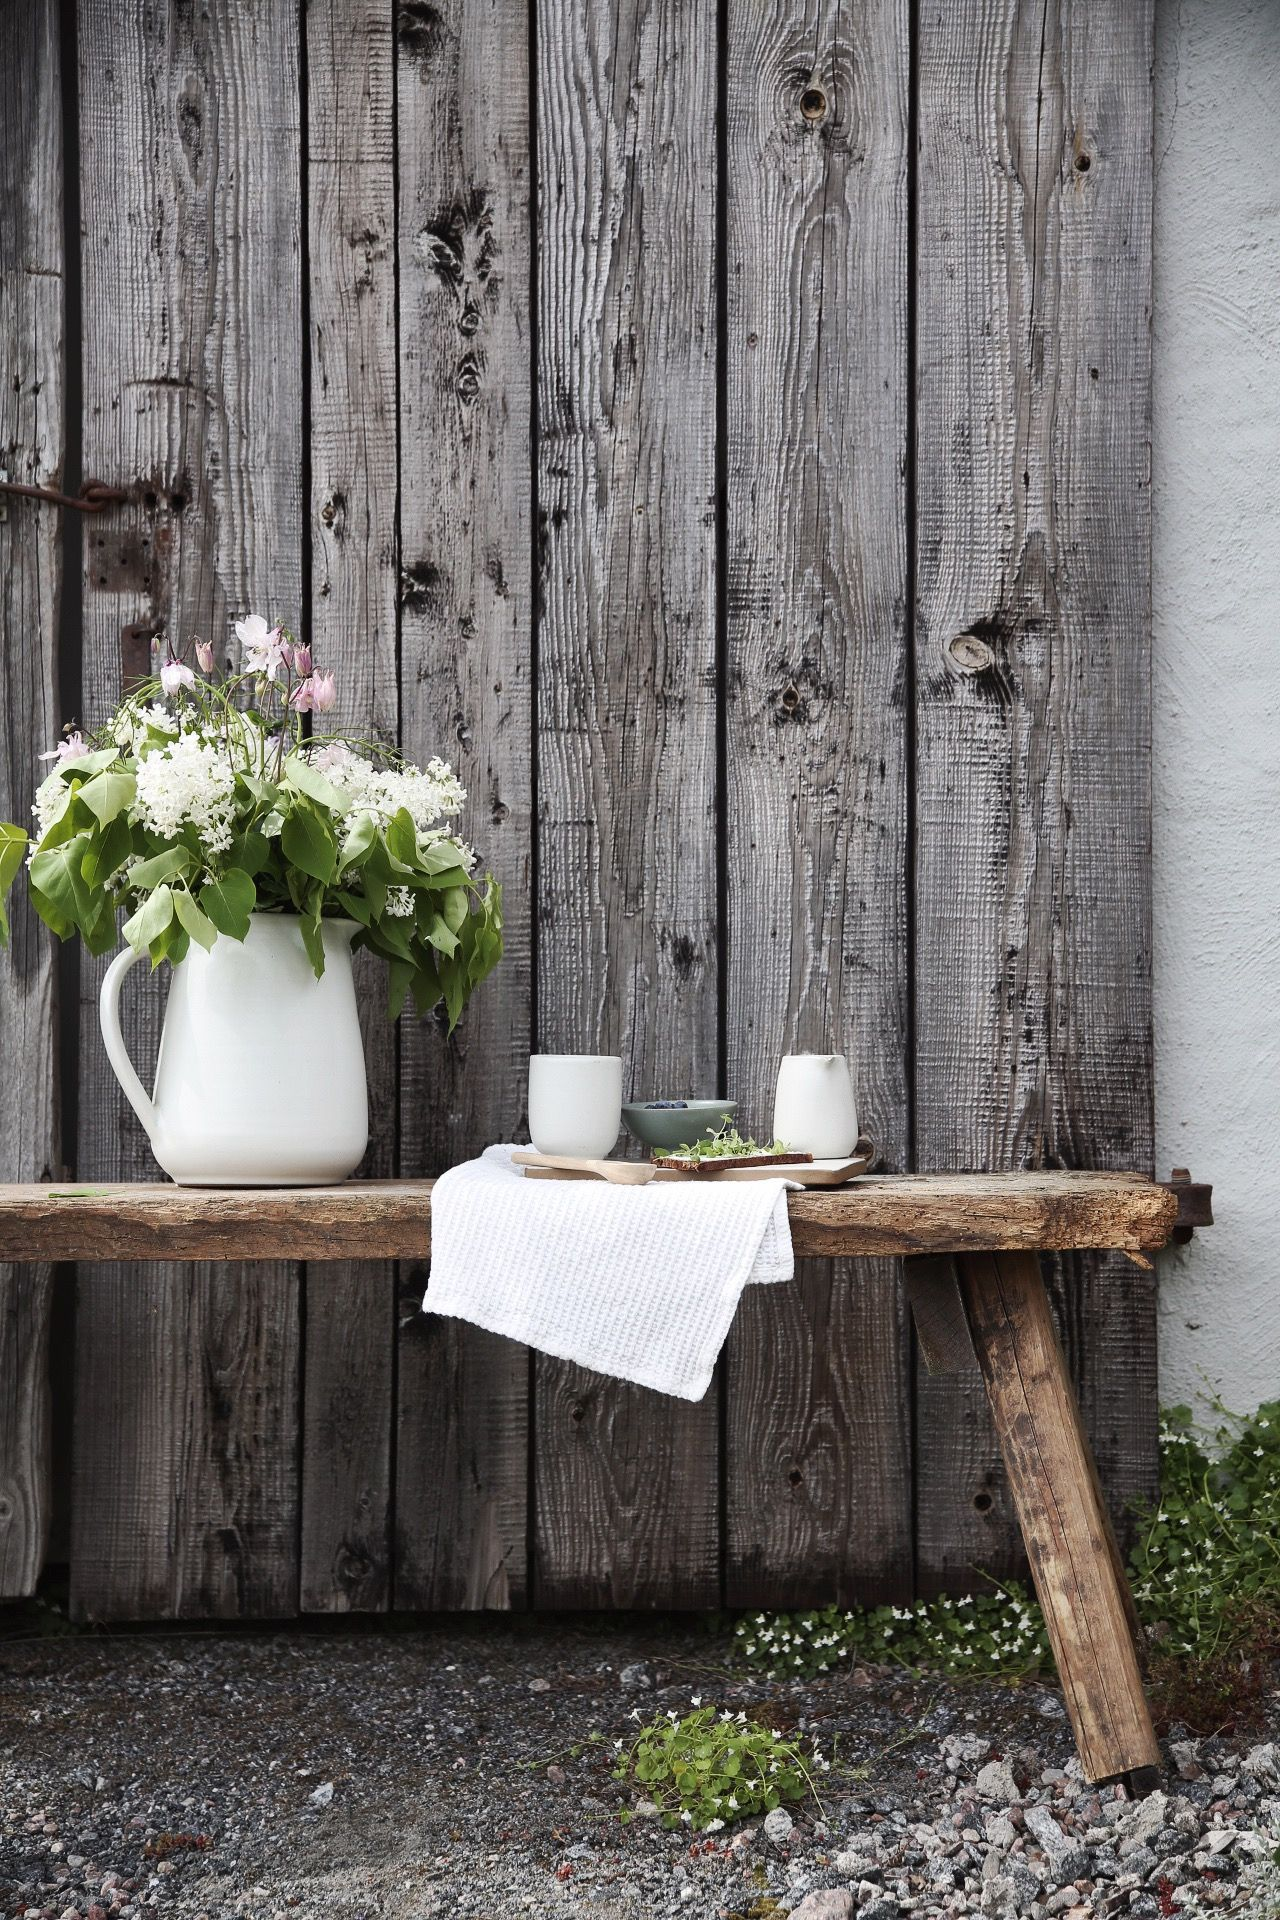 Pin by kuntol on flowers pinterest ottoman bench country life